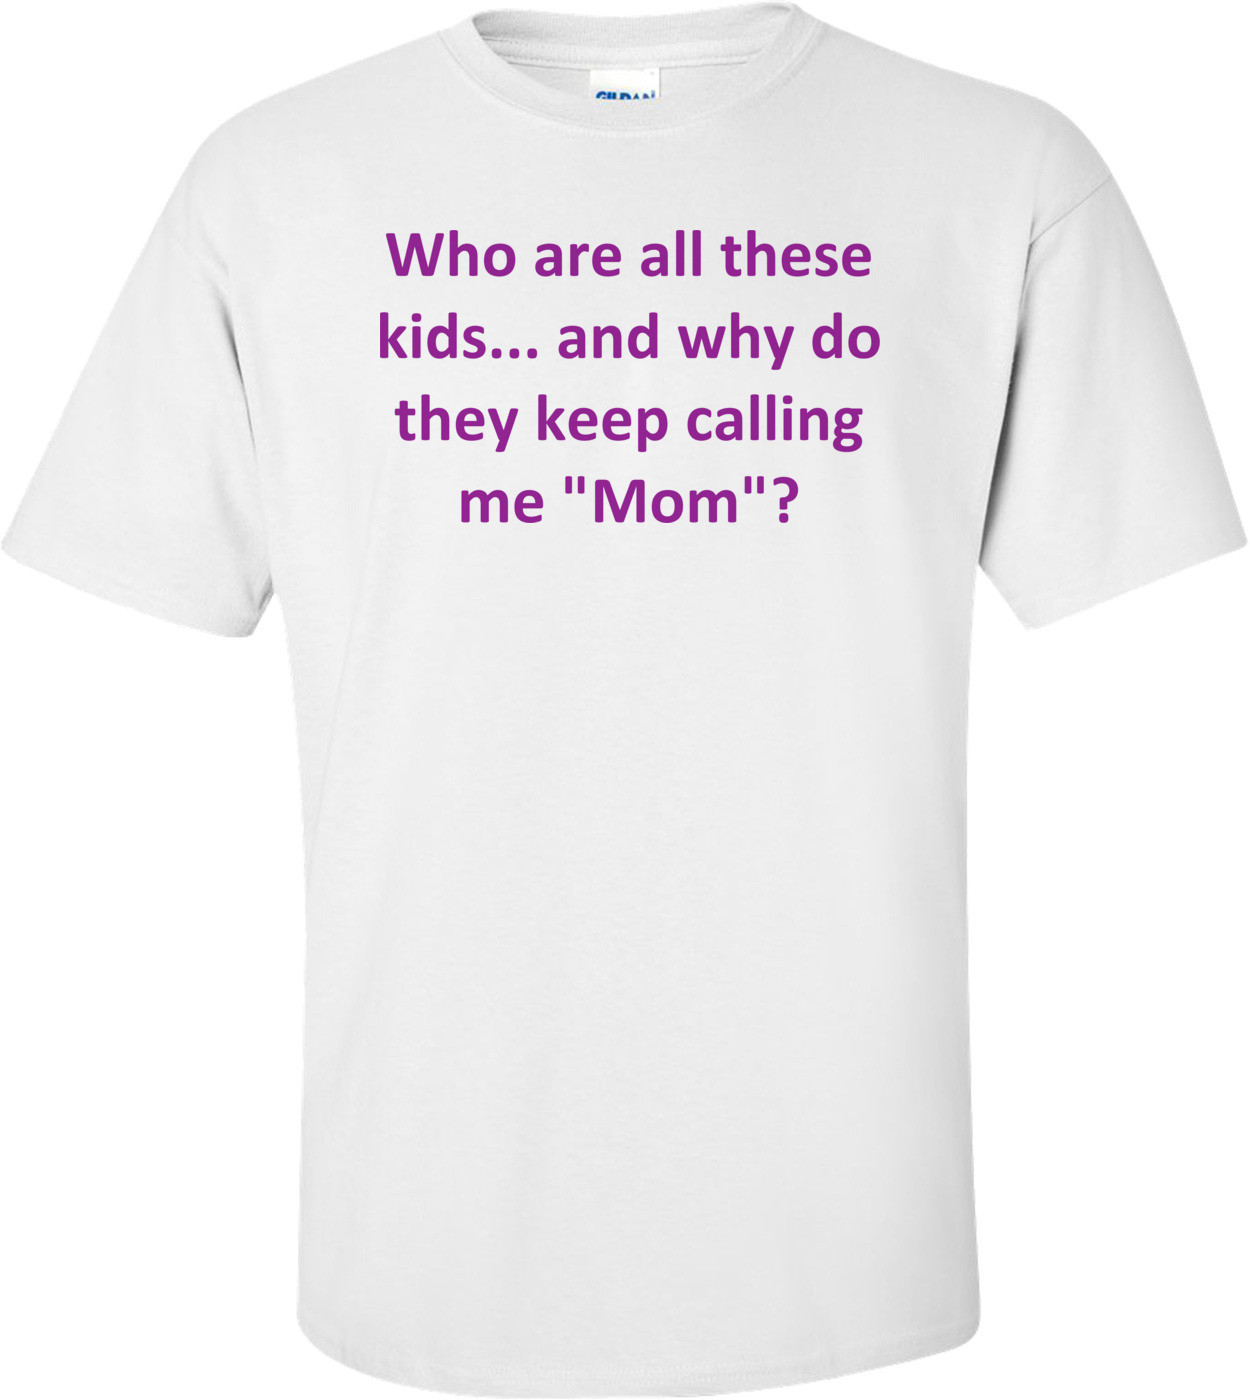 "Who are all these kids... and why do they keep calling me ""Mom""? Shirt"